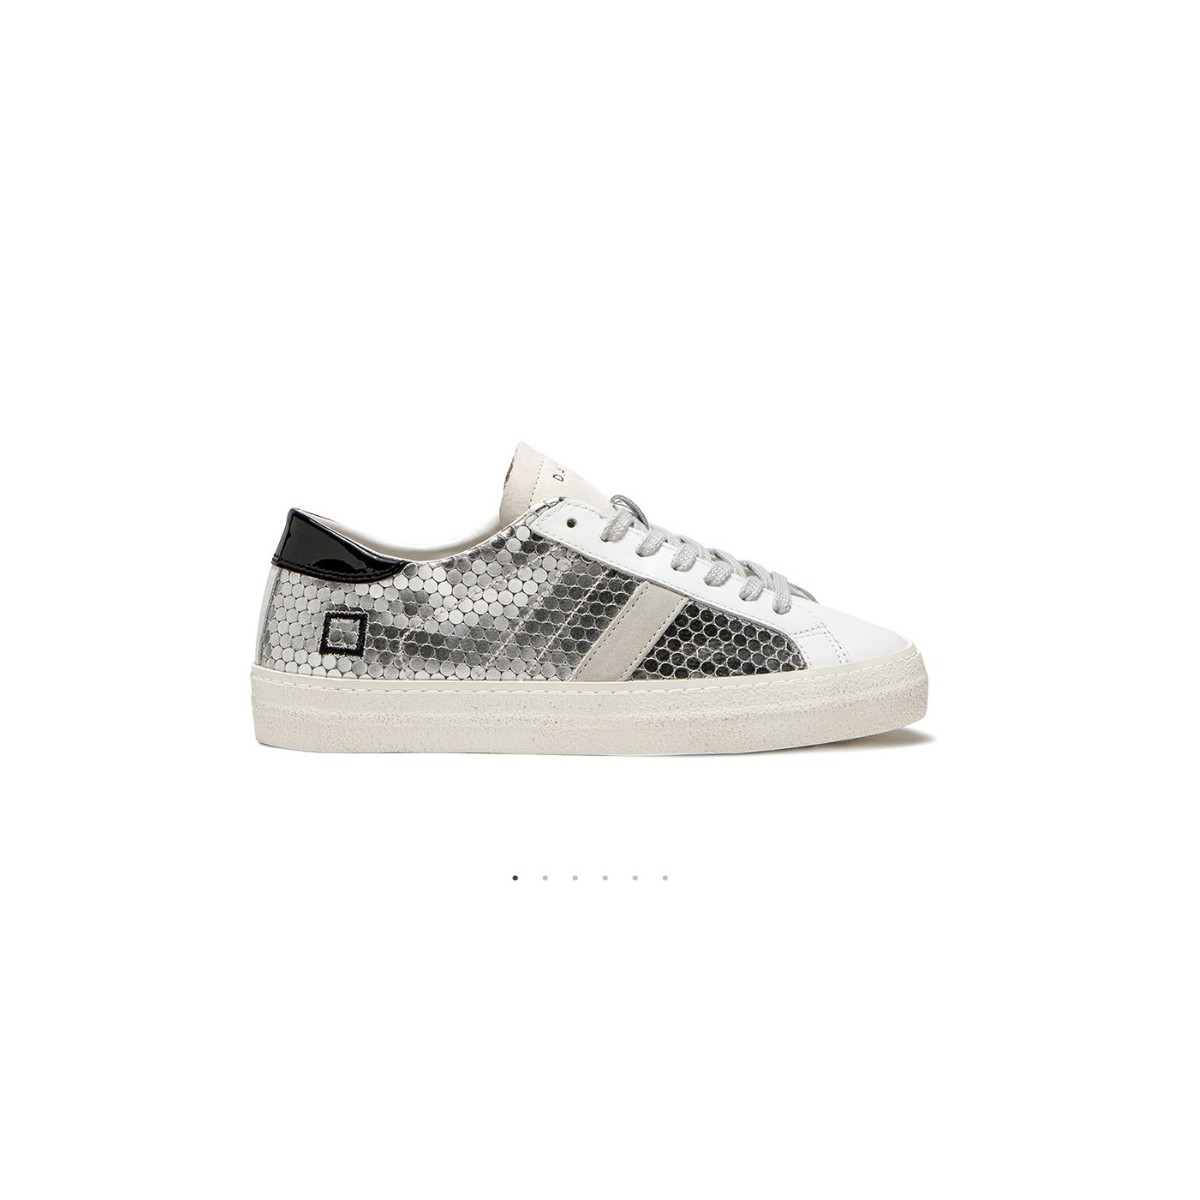 Scarpa - Hill low pong silver